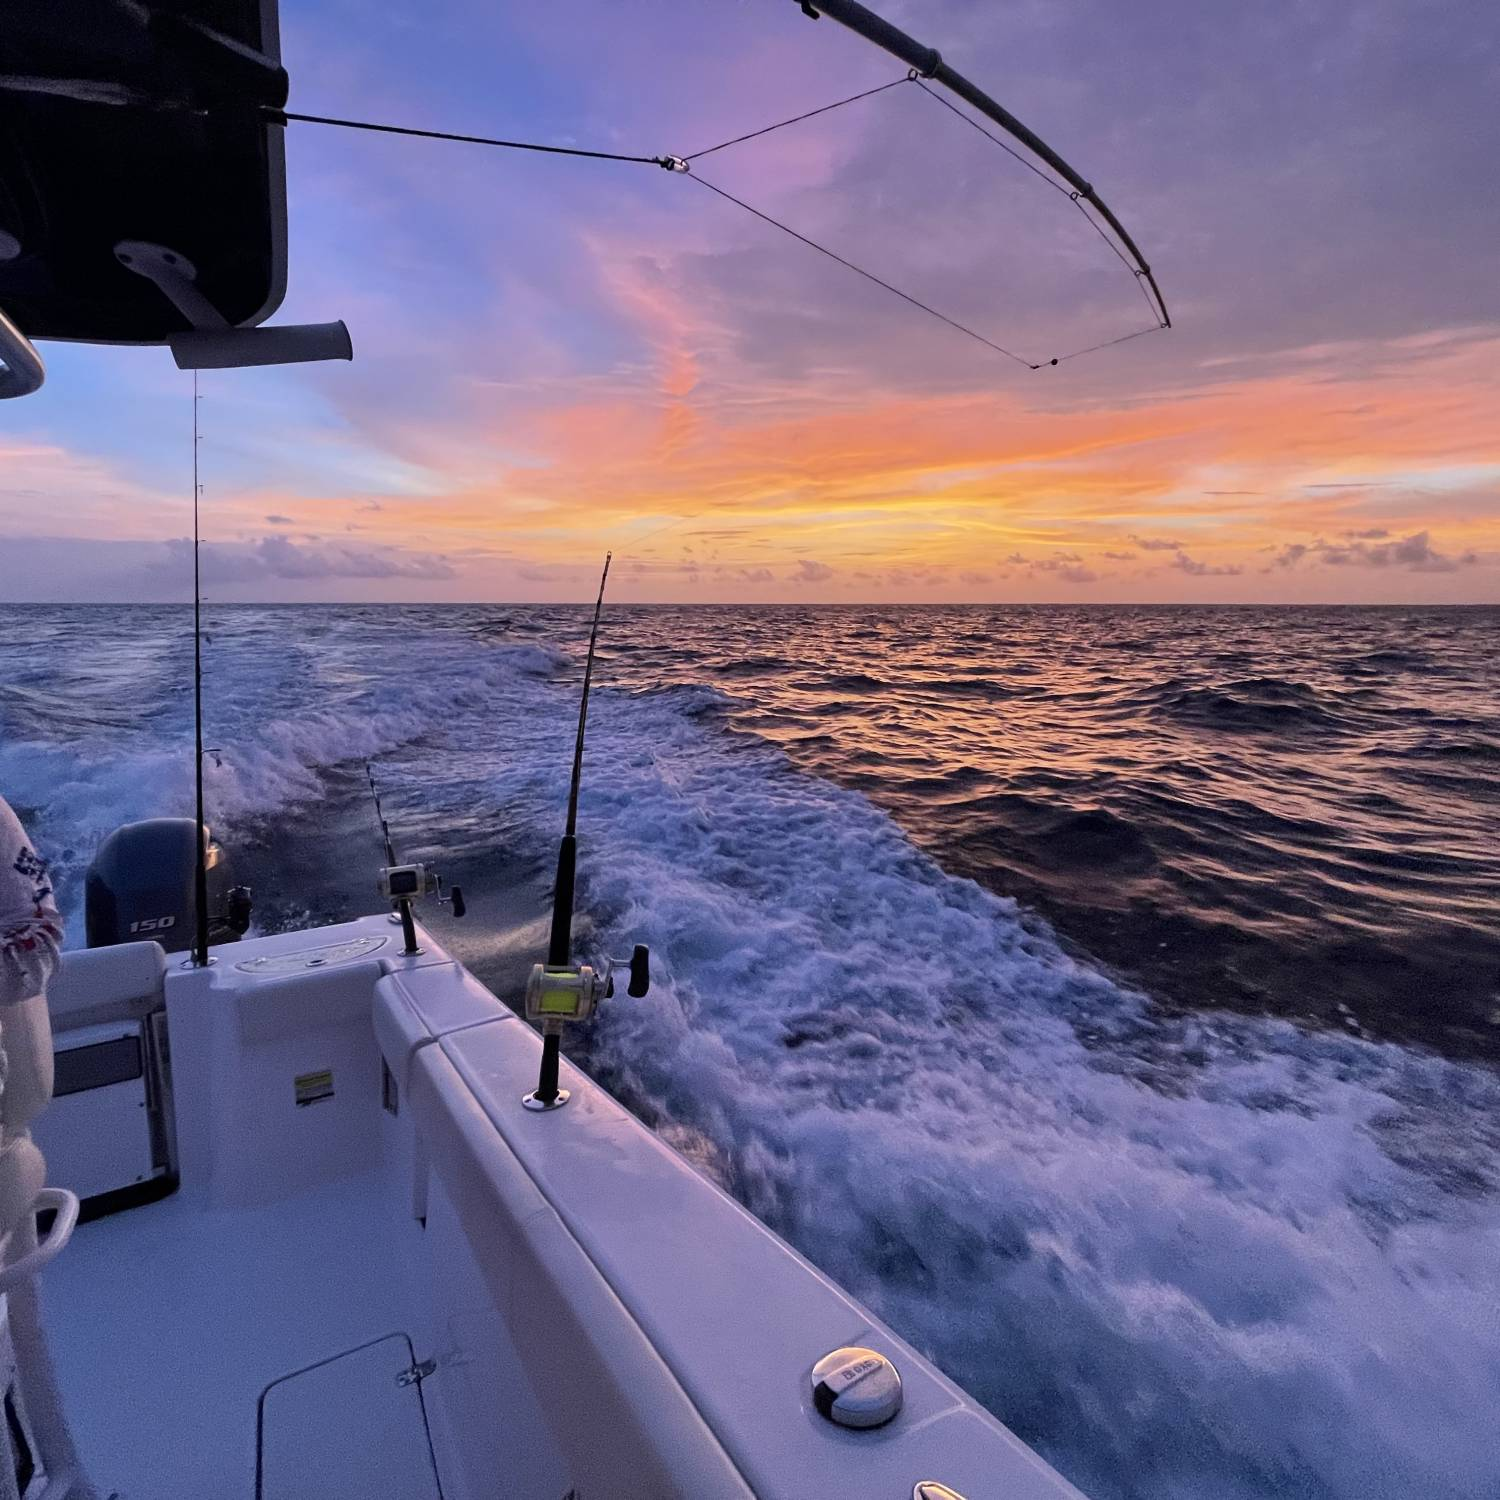 Sunrise over the Gulf of Mexico - lines out, cruising for a bite